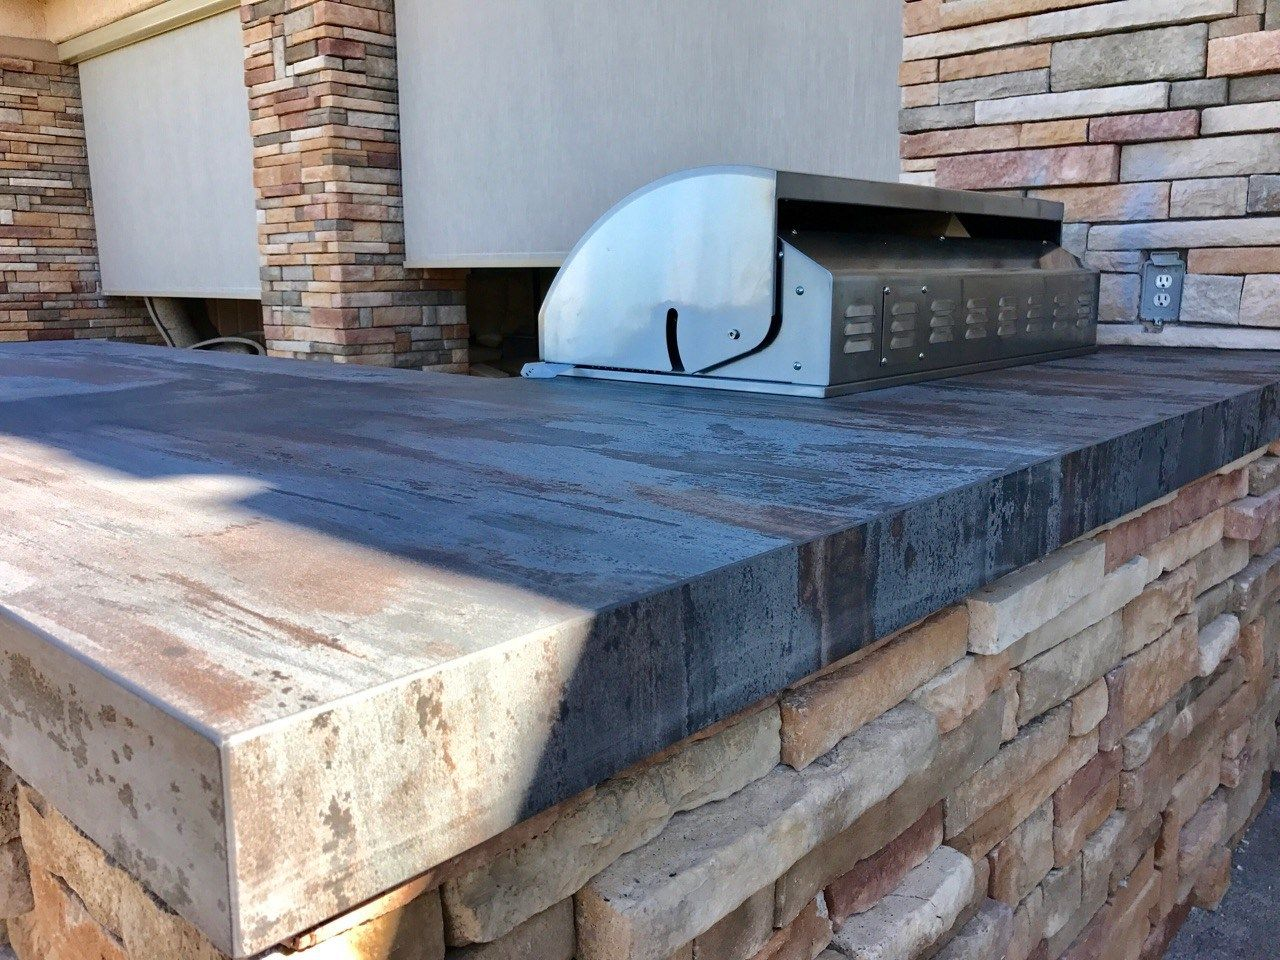 Residential Commercial Outdoor Kitchen Design And Construction Services Of Southern Nevada Bbqconcepts We Love To Grill Build Astonishing